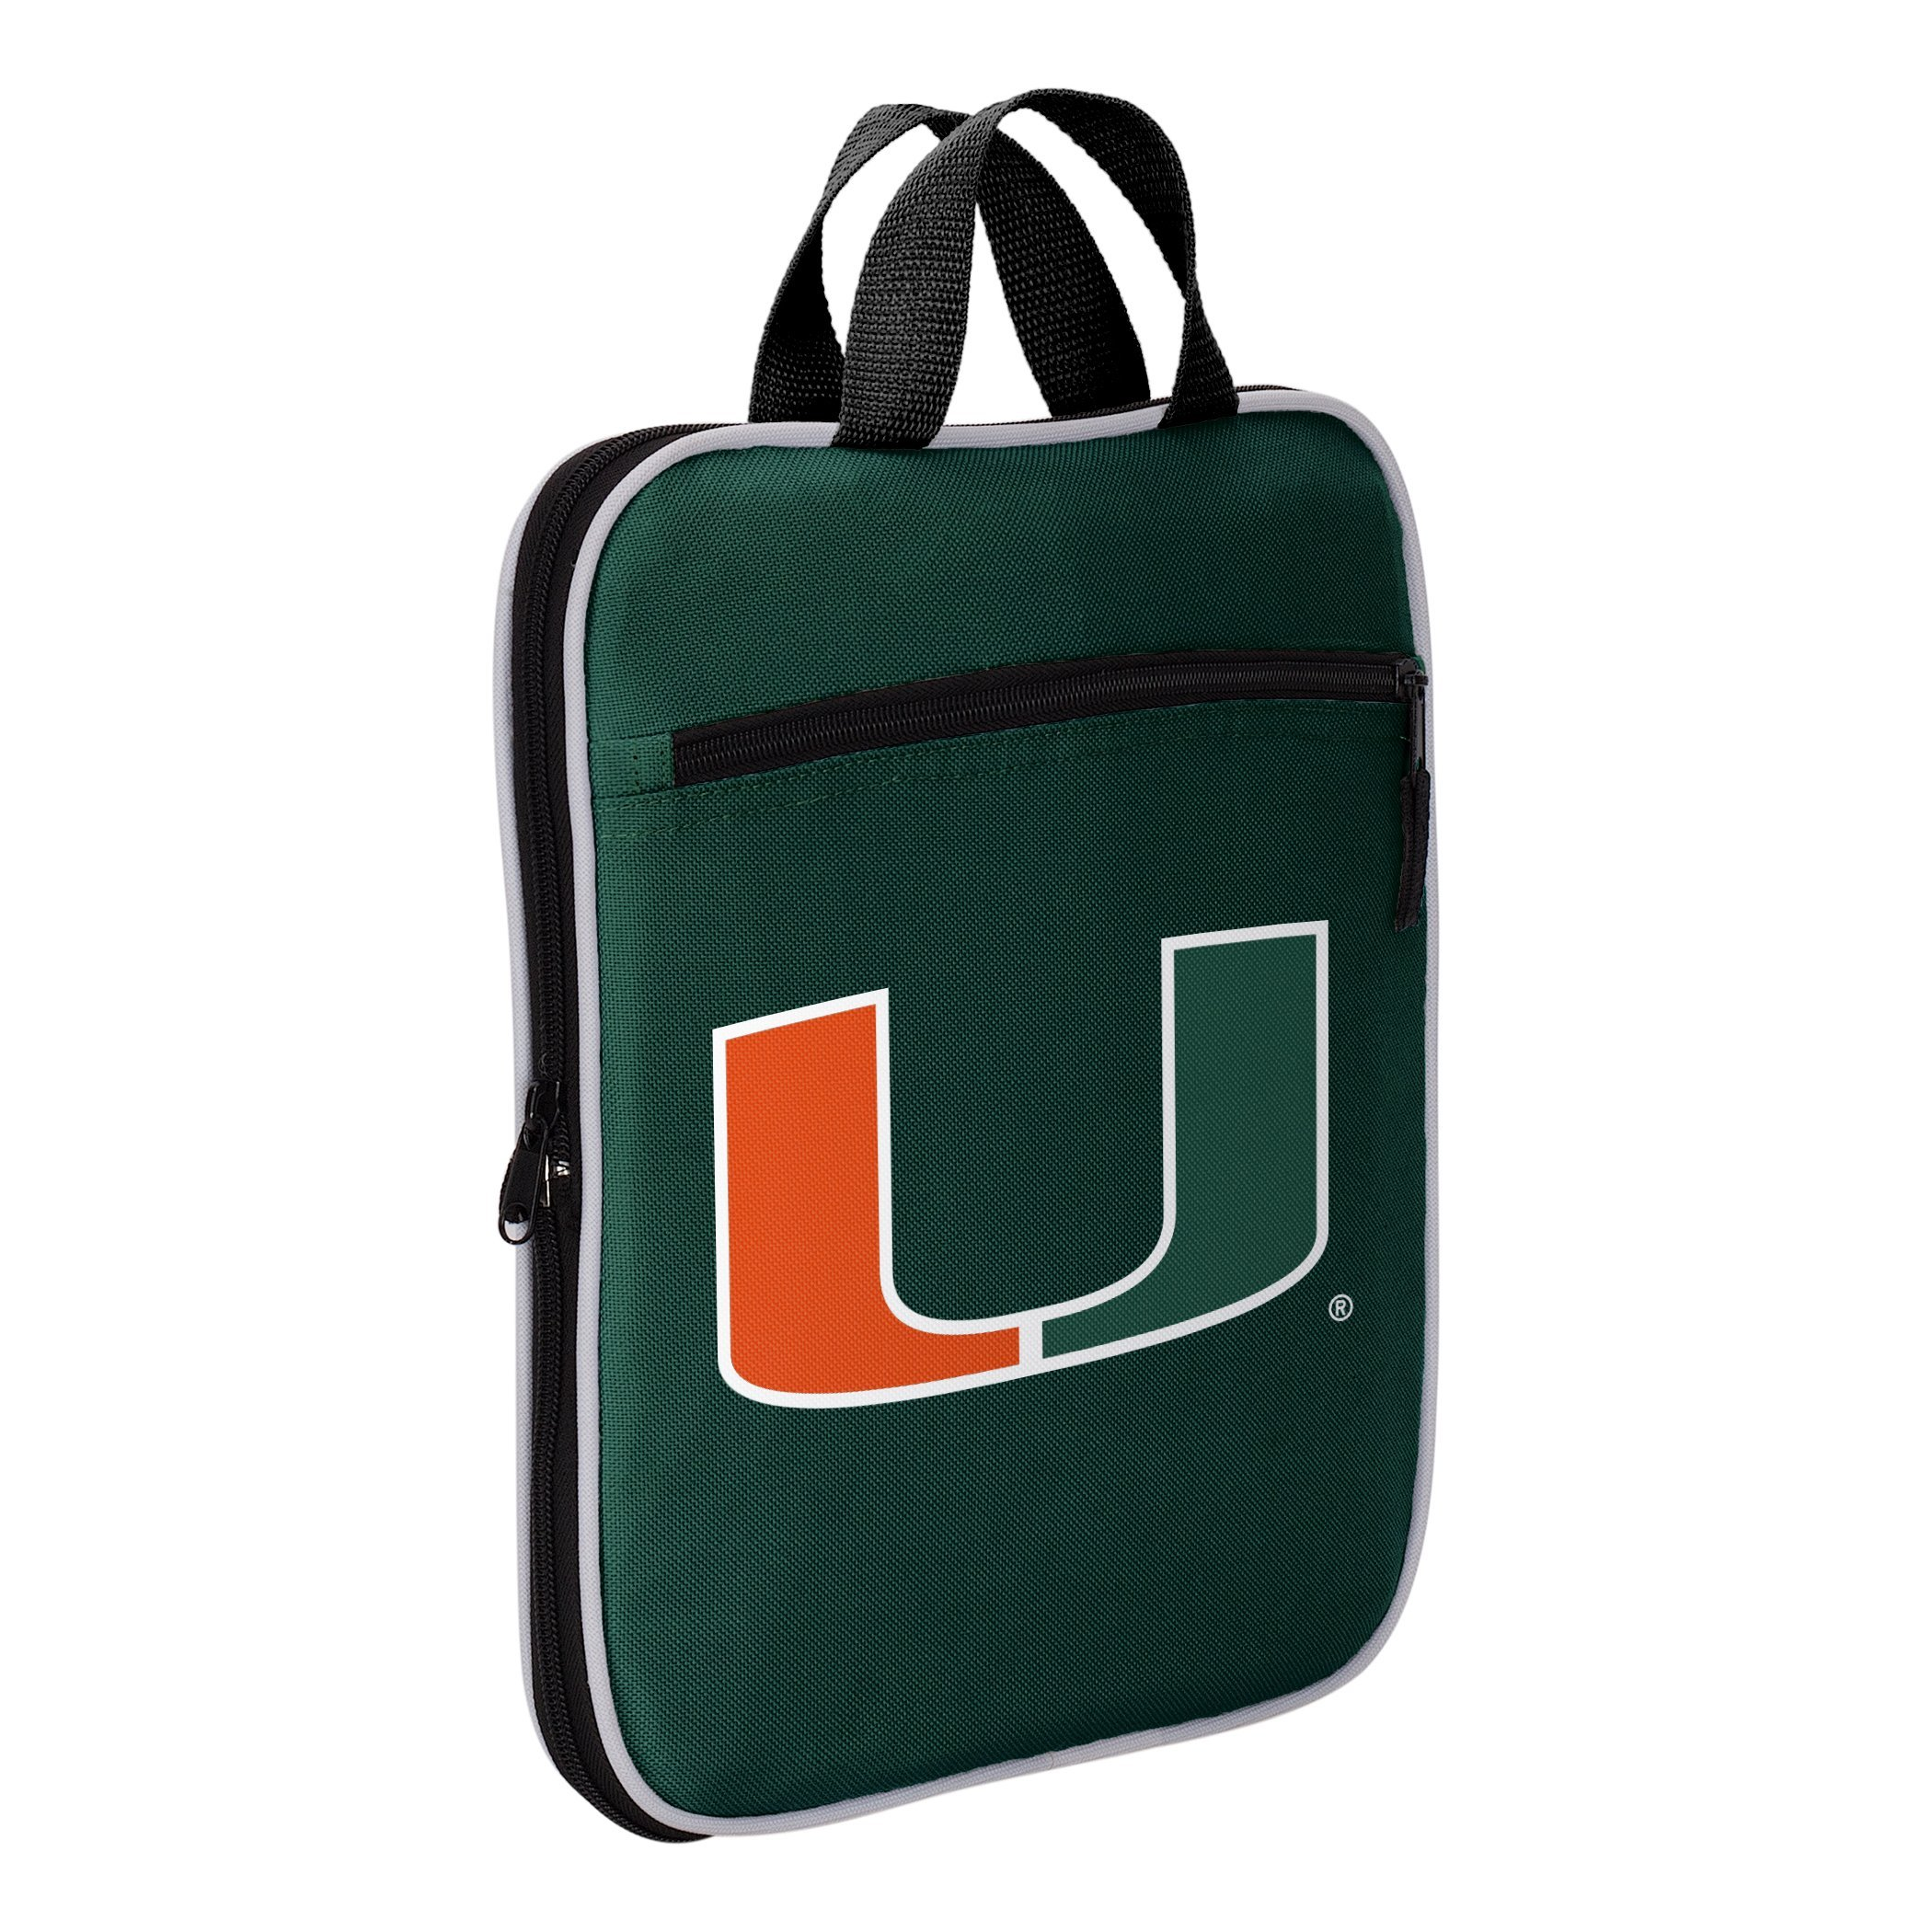 Officially Licensed NCAA Miami Hurricanes Steal Duffel Bag by The Northwest Company (Image #4)